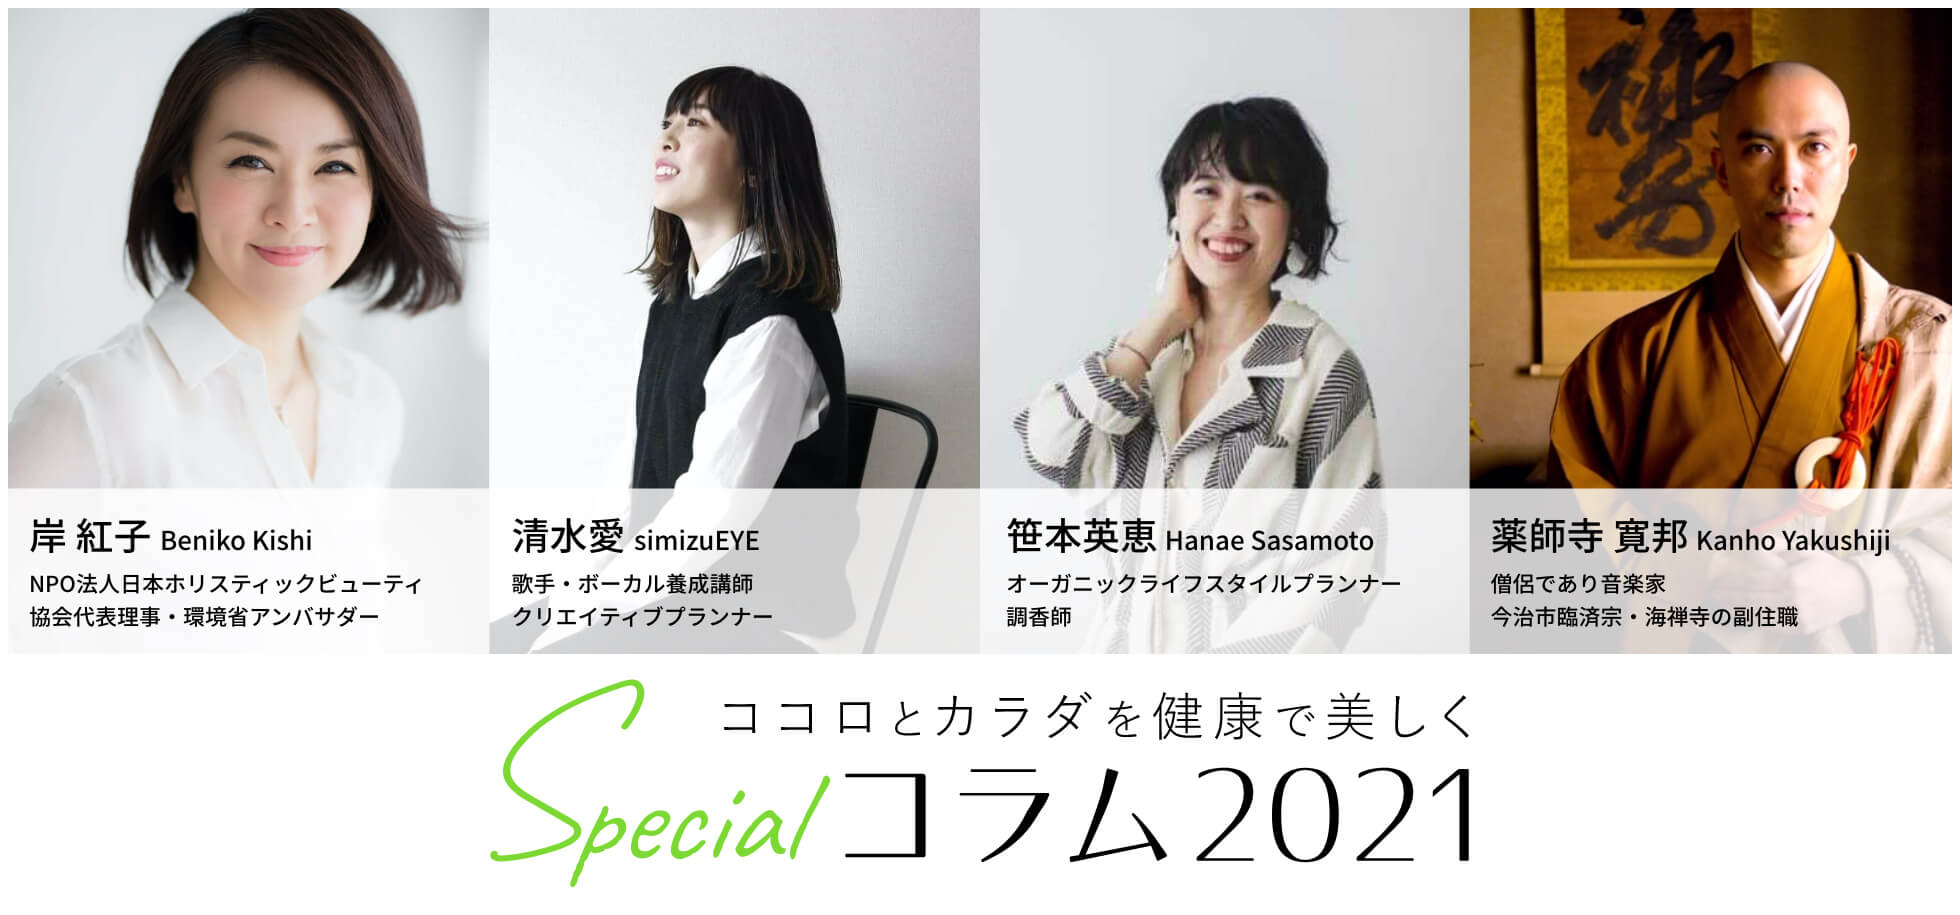 Specialコラム2021